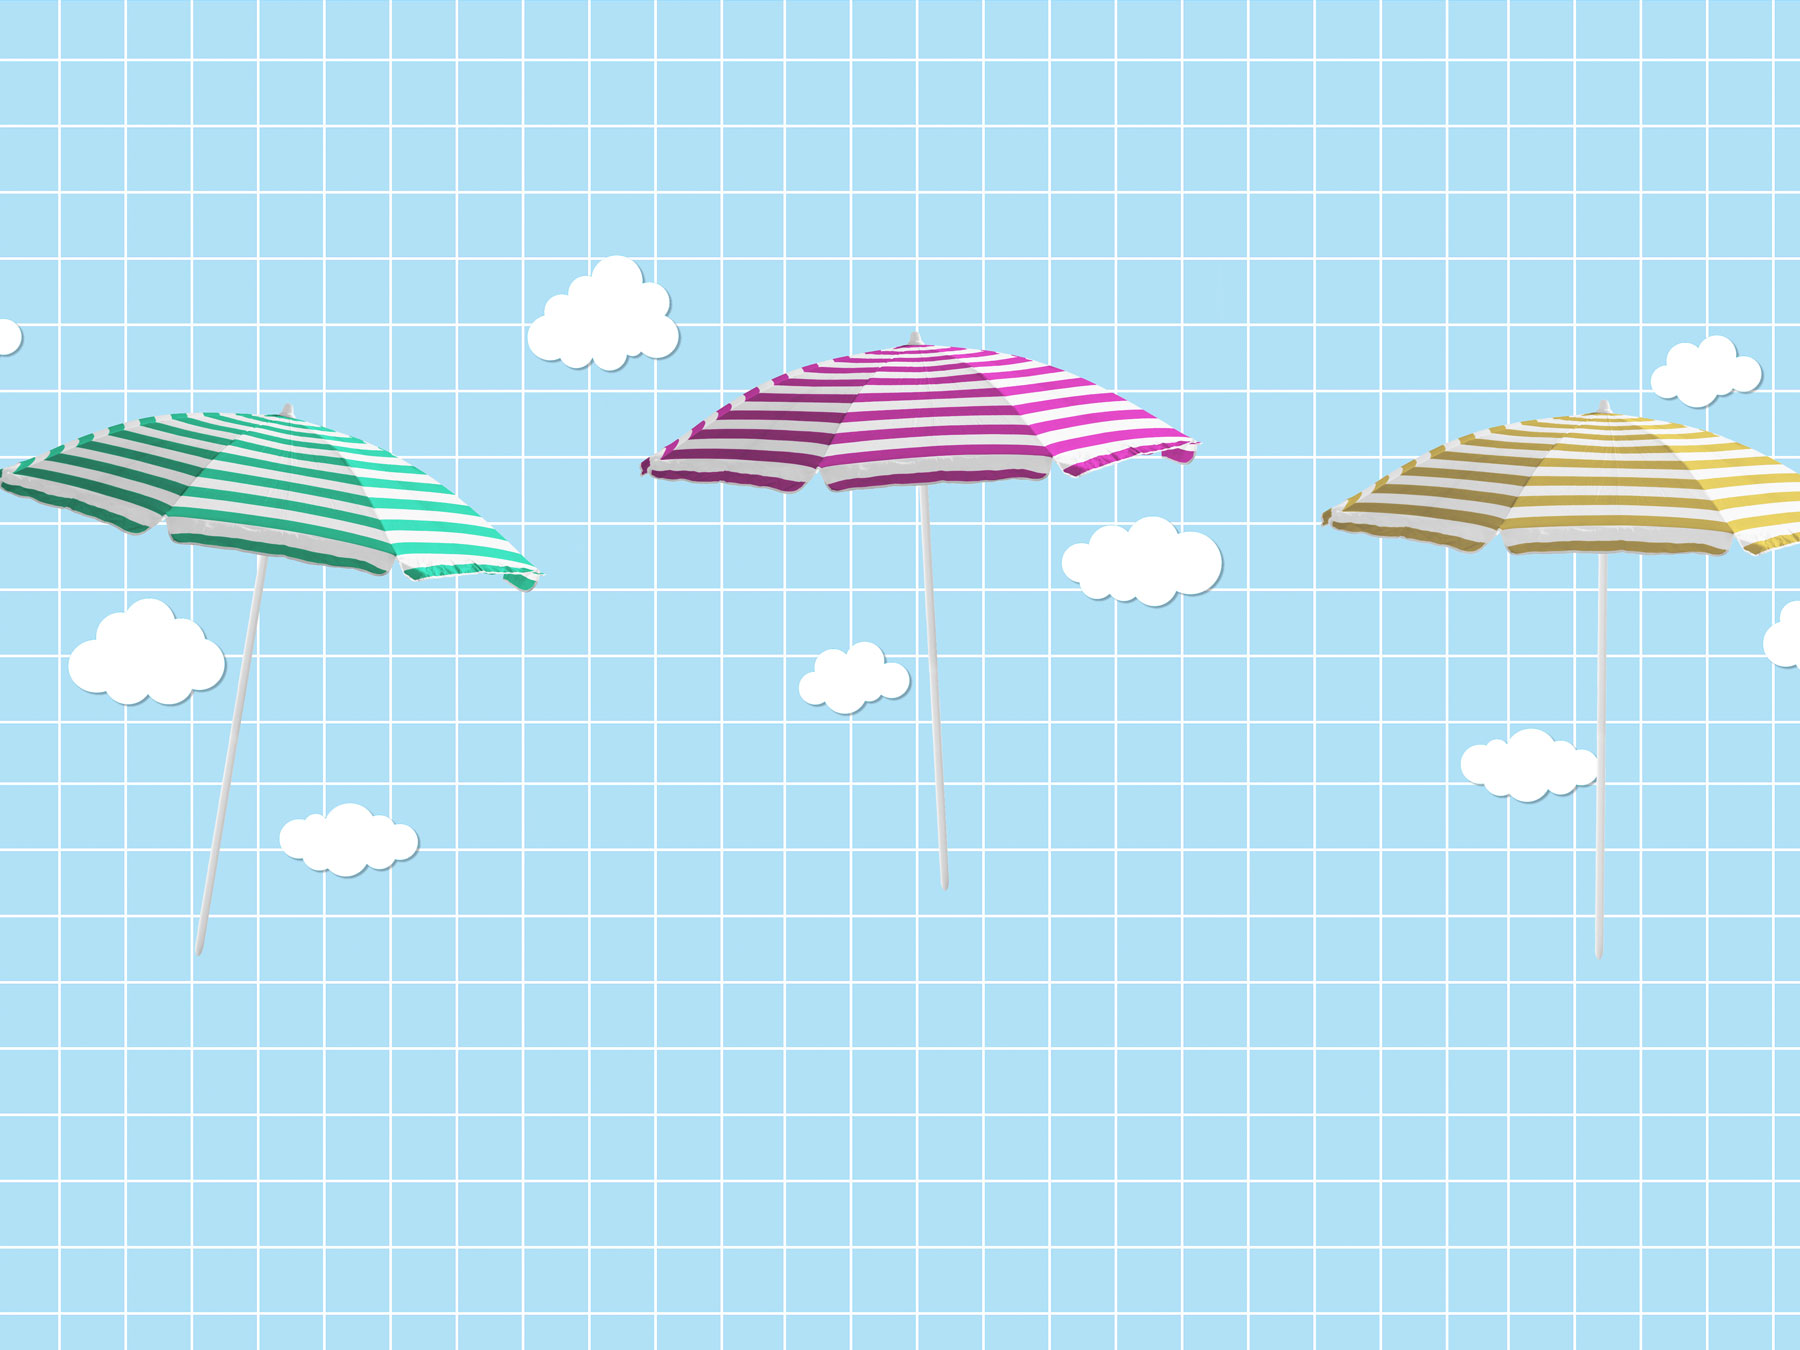 Here's How to Secure Your Beach Umbrella to Avoid Accidents